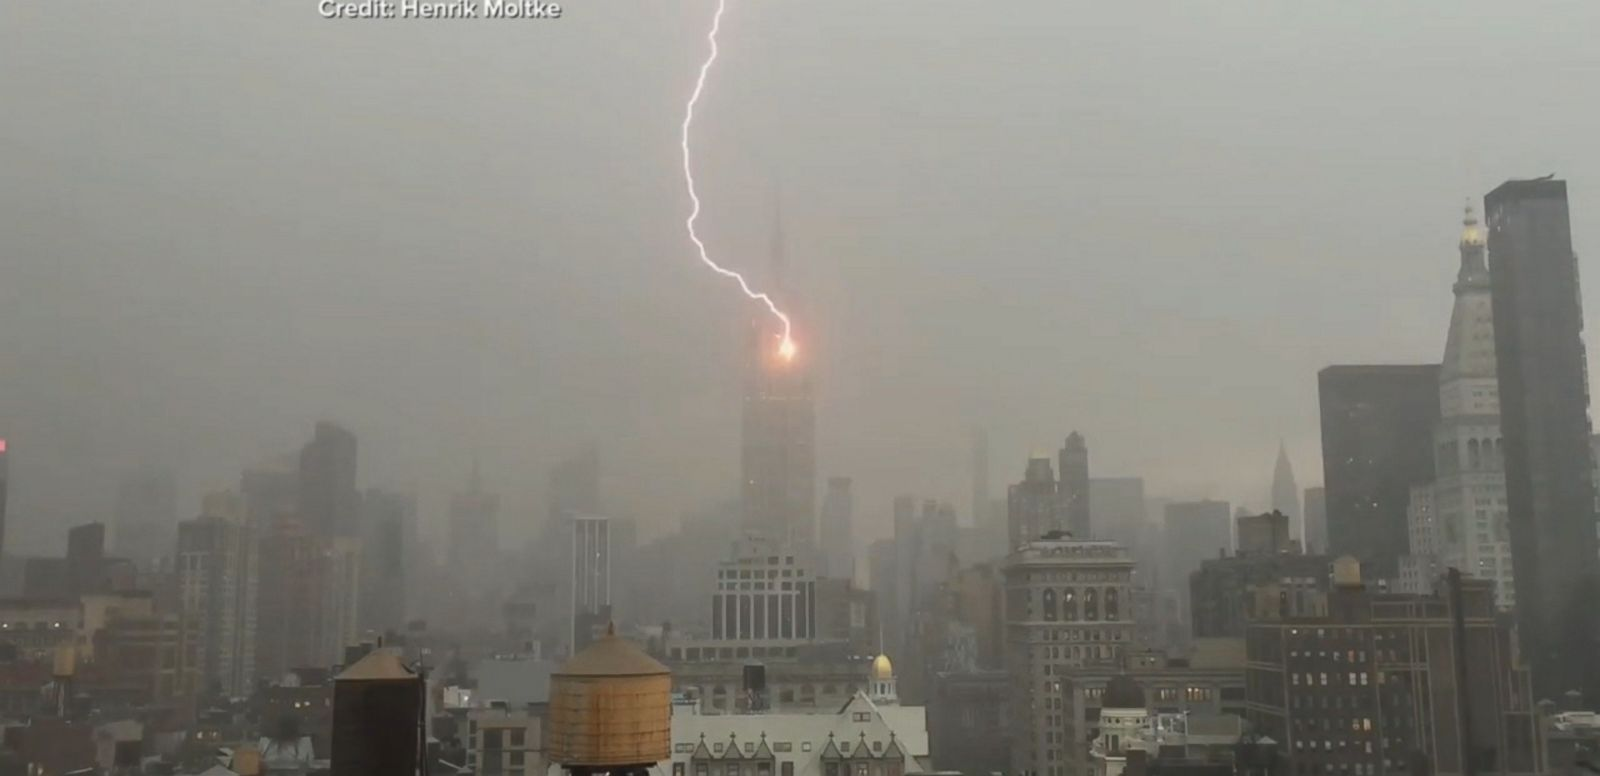 VIDEO: The Empire State building was hit by a bolt of lightning during a severe storm that soaked the city.